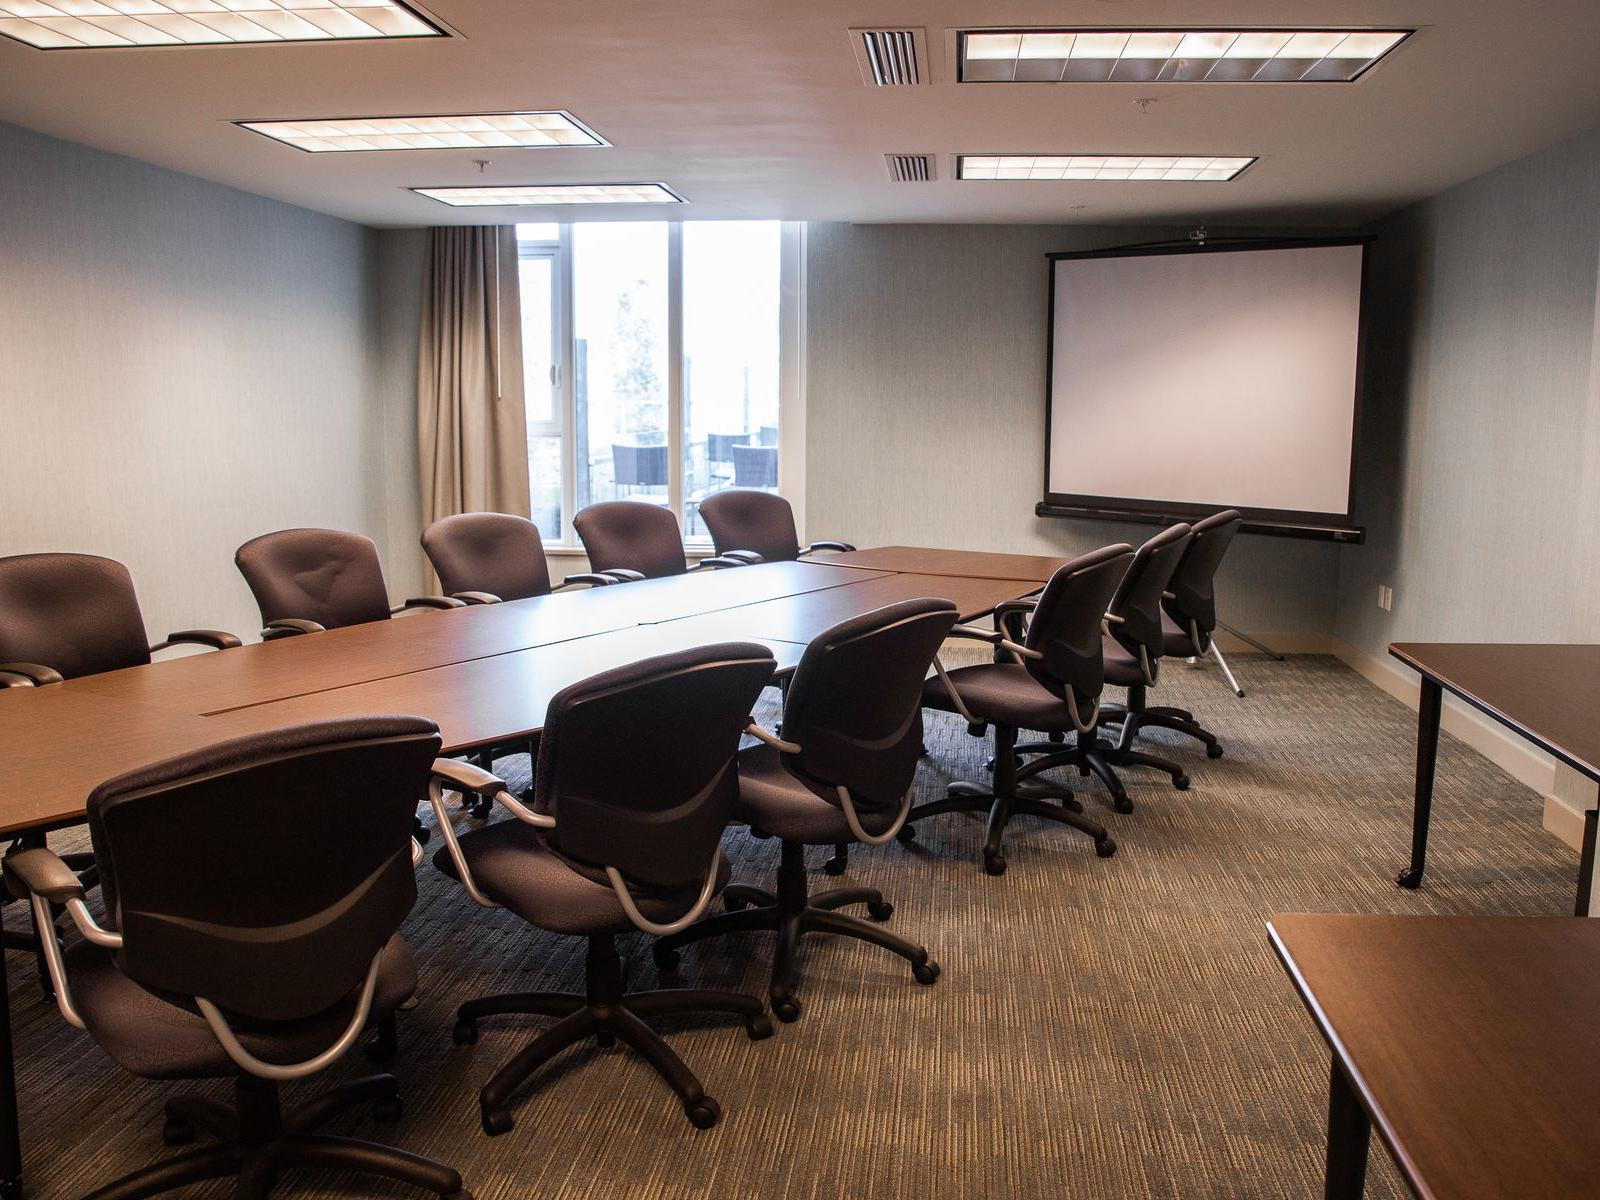 a conference table facing a projector screen